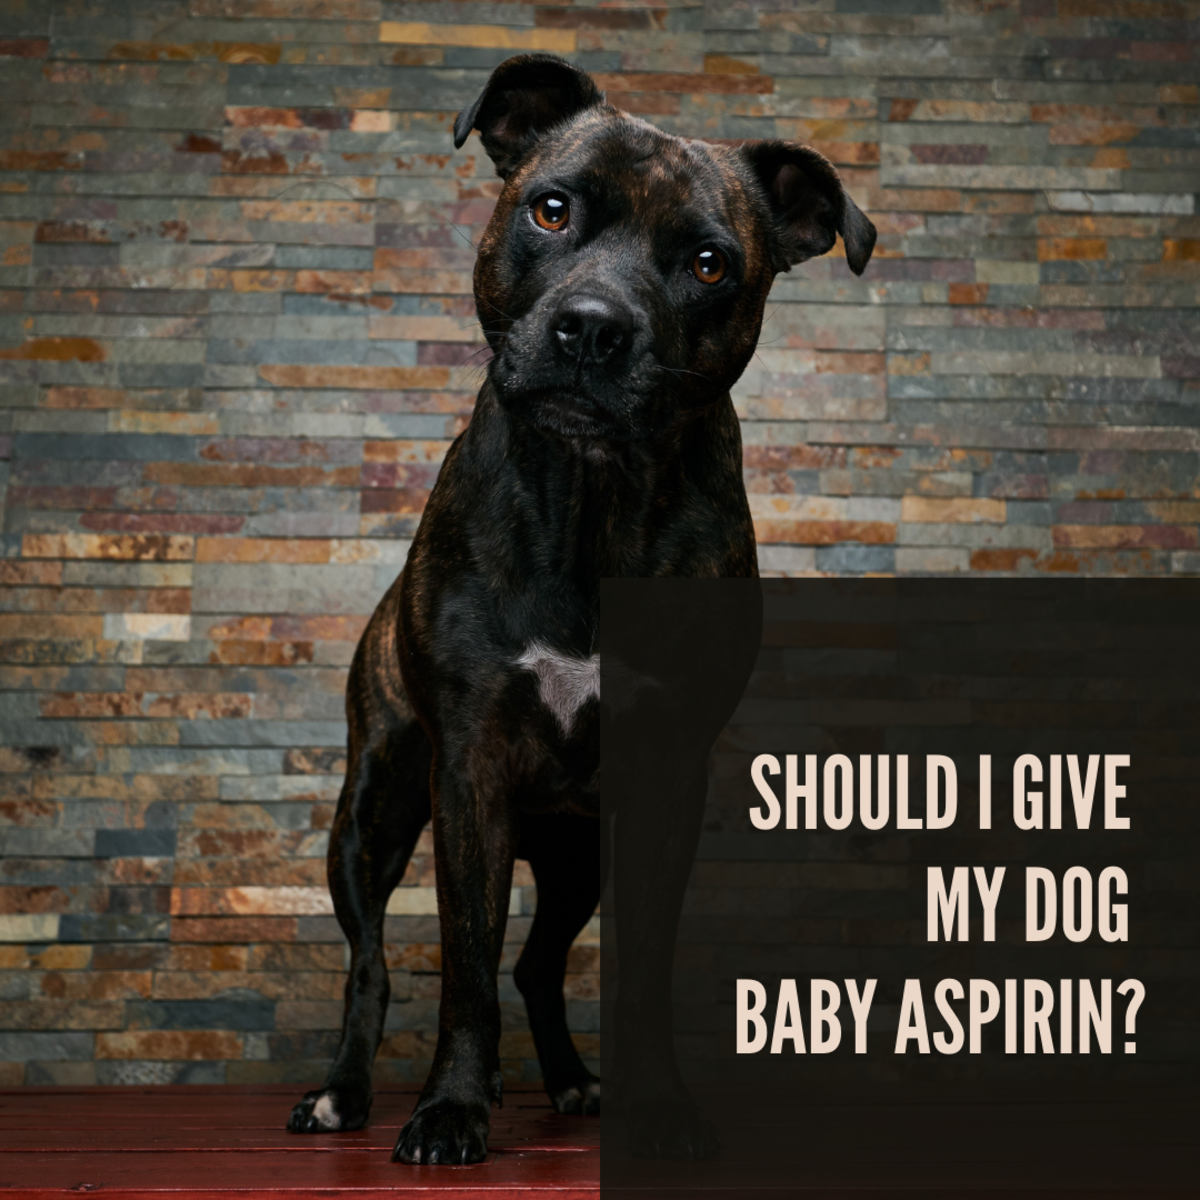 It's important to carefully consider the safety of medications we give our dogs.